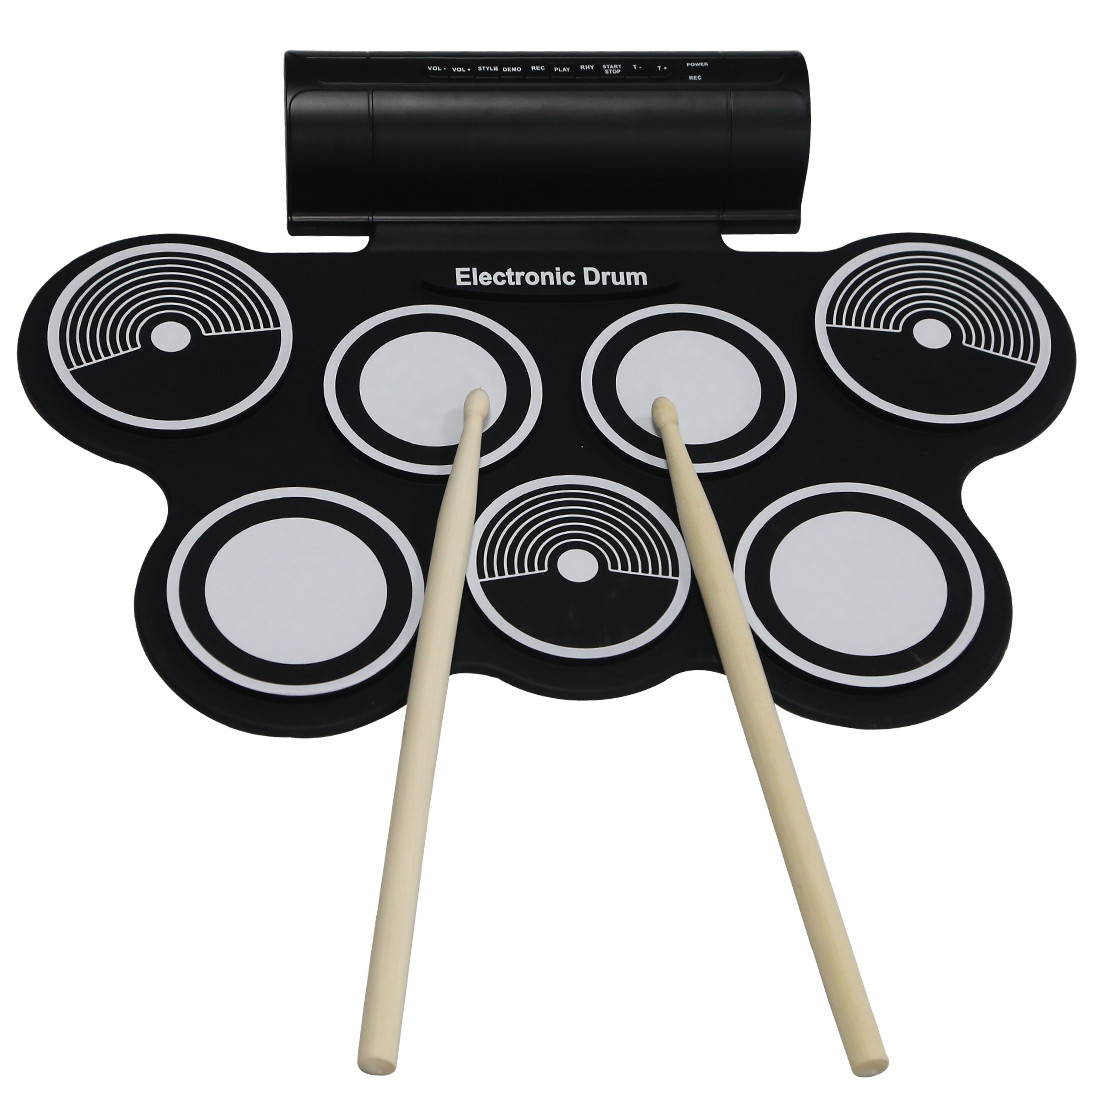 Hot Sale Portable Electronic Roll Up Drum Pad Kit USB MIDI Machine Silicone Percussion Instruments with Drumstick Foot Pedal 6pcs set 39x 27 5x2 5cm silica gel foldable portable roller up usb electronic drum kit 2 drum sticks 2 foot pedals